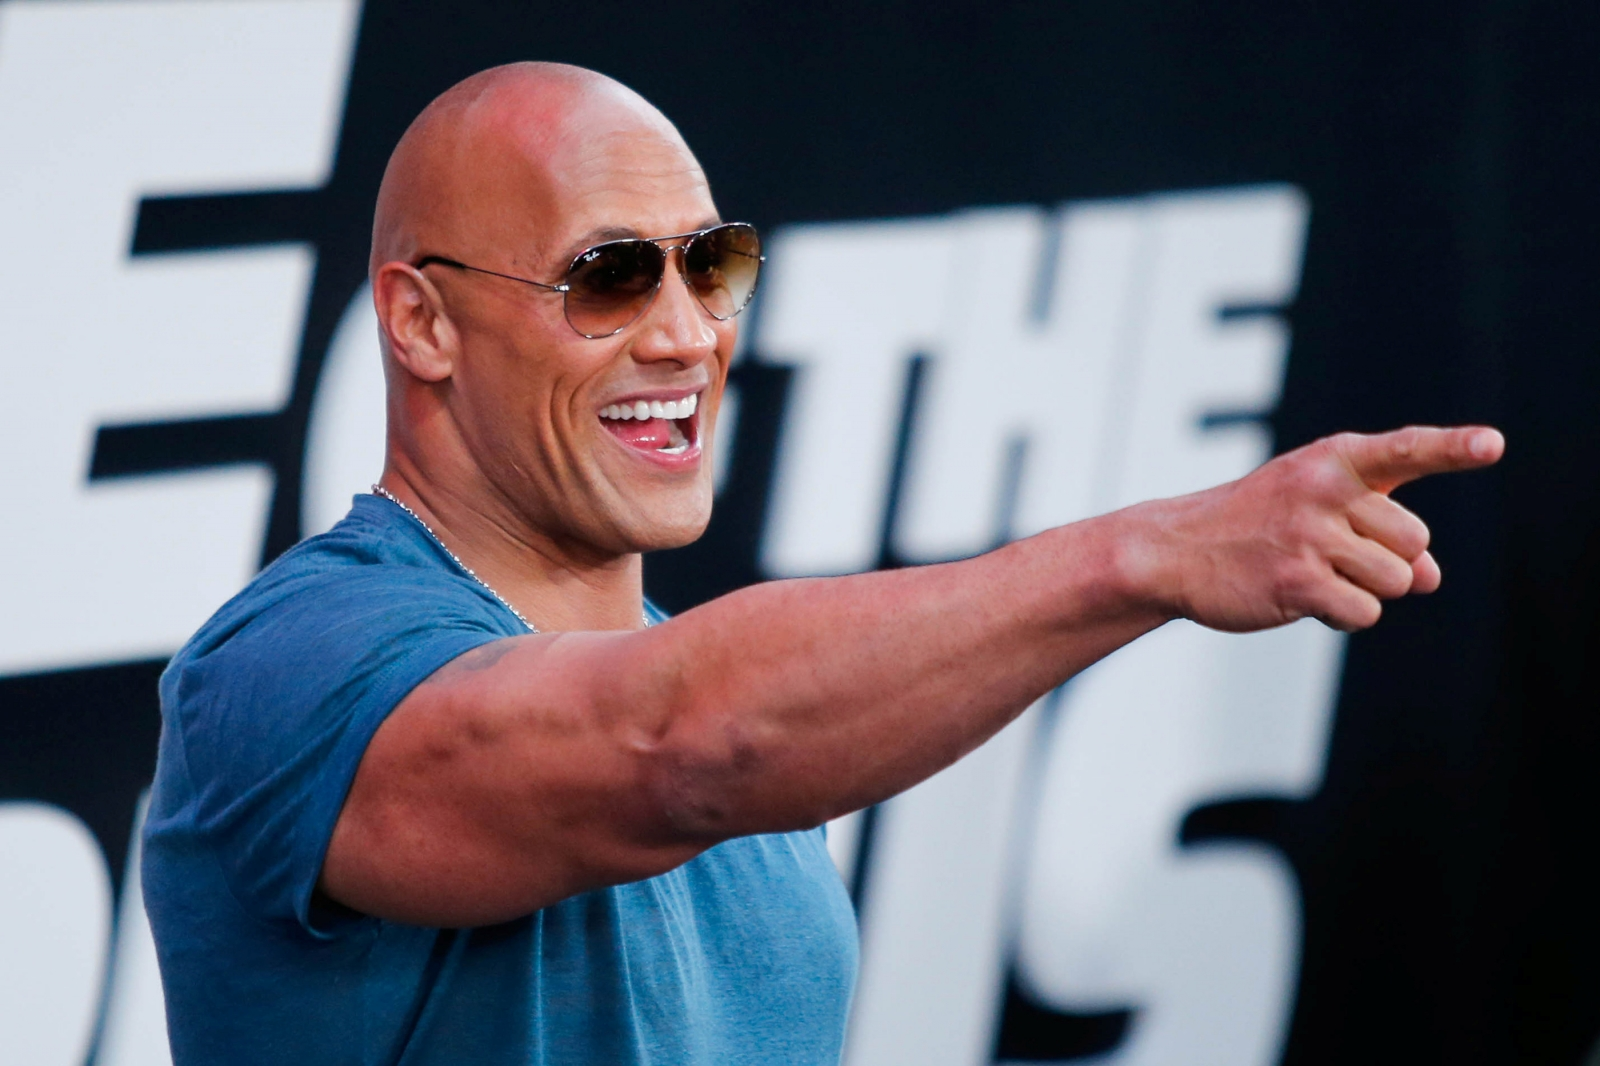 Apparently Dwayne Johnson was serious about that whole POTUS thing